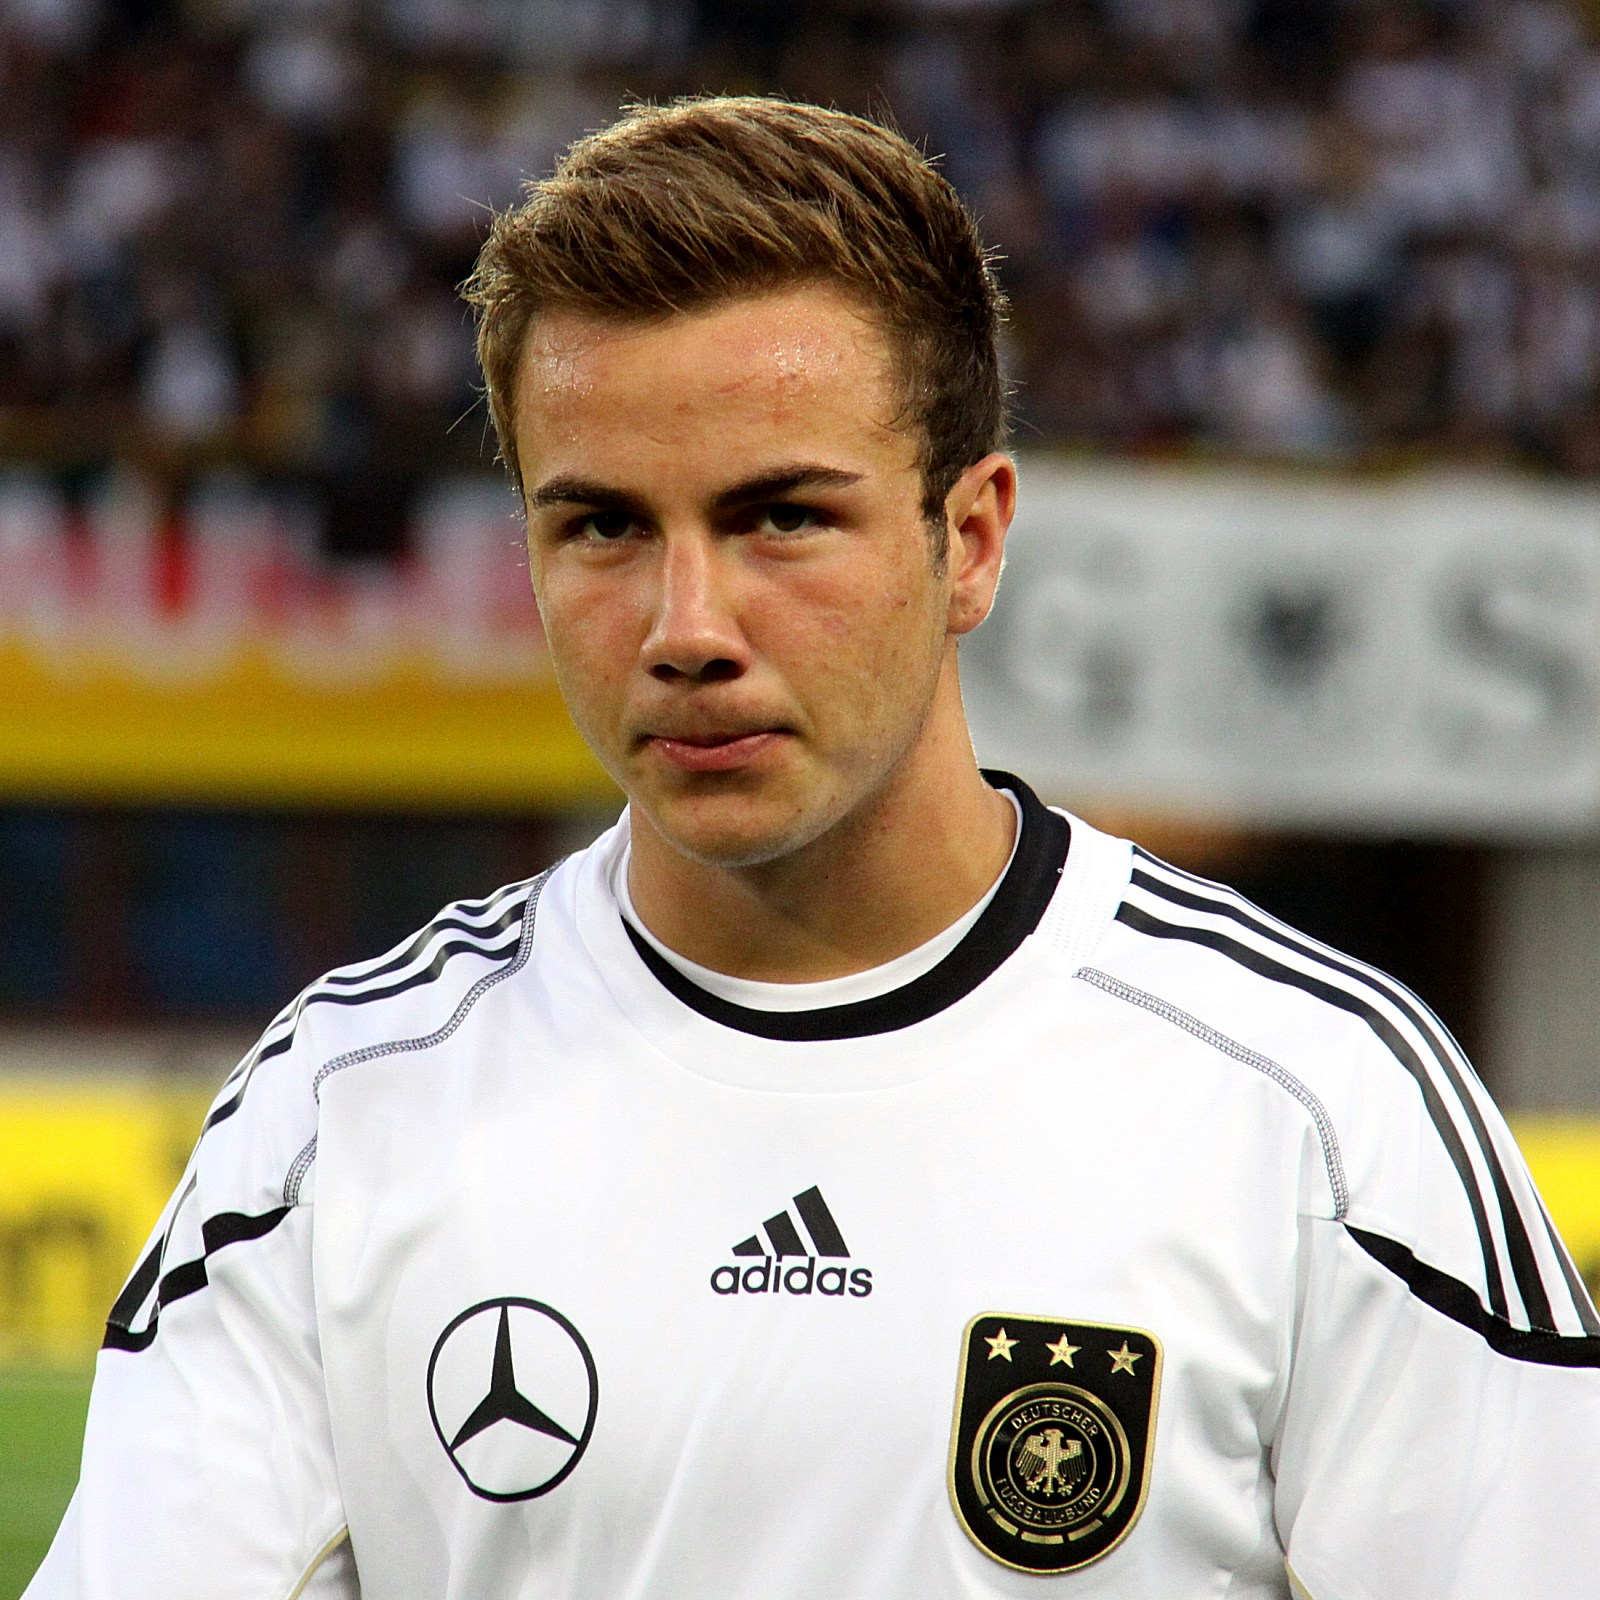 Mario_Götze,_Germany_national_football_team_(06)